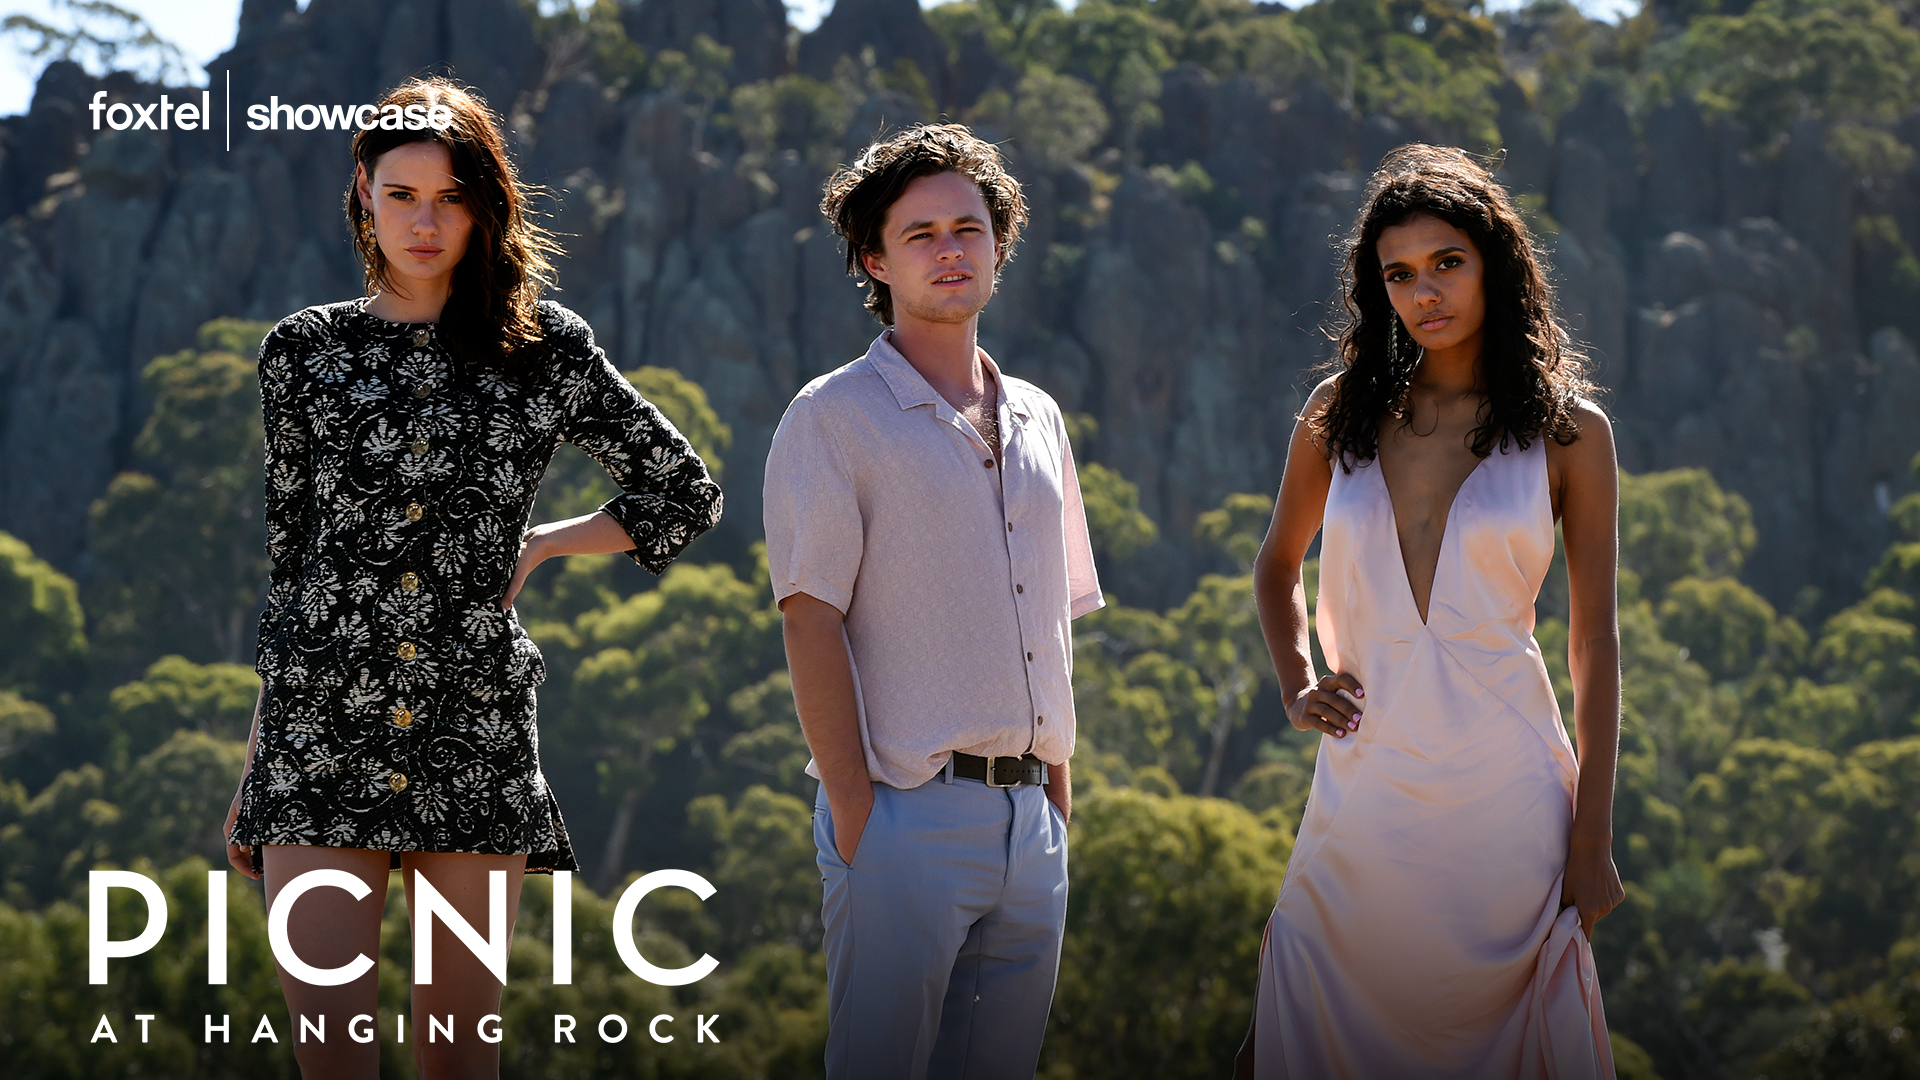 how to watch picnic at hanging rock without foxtel